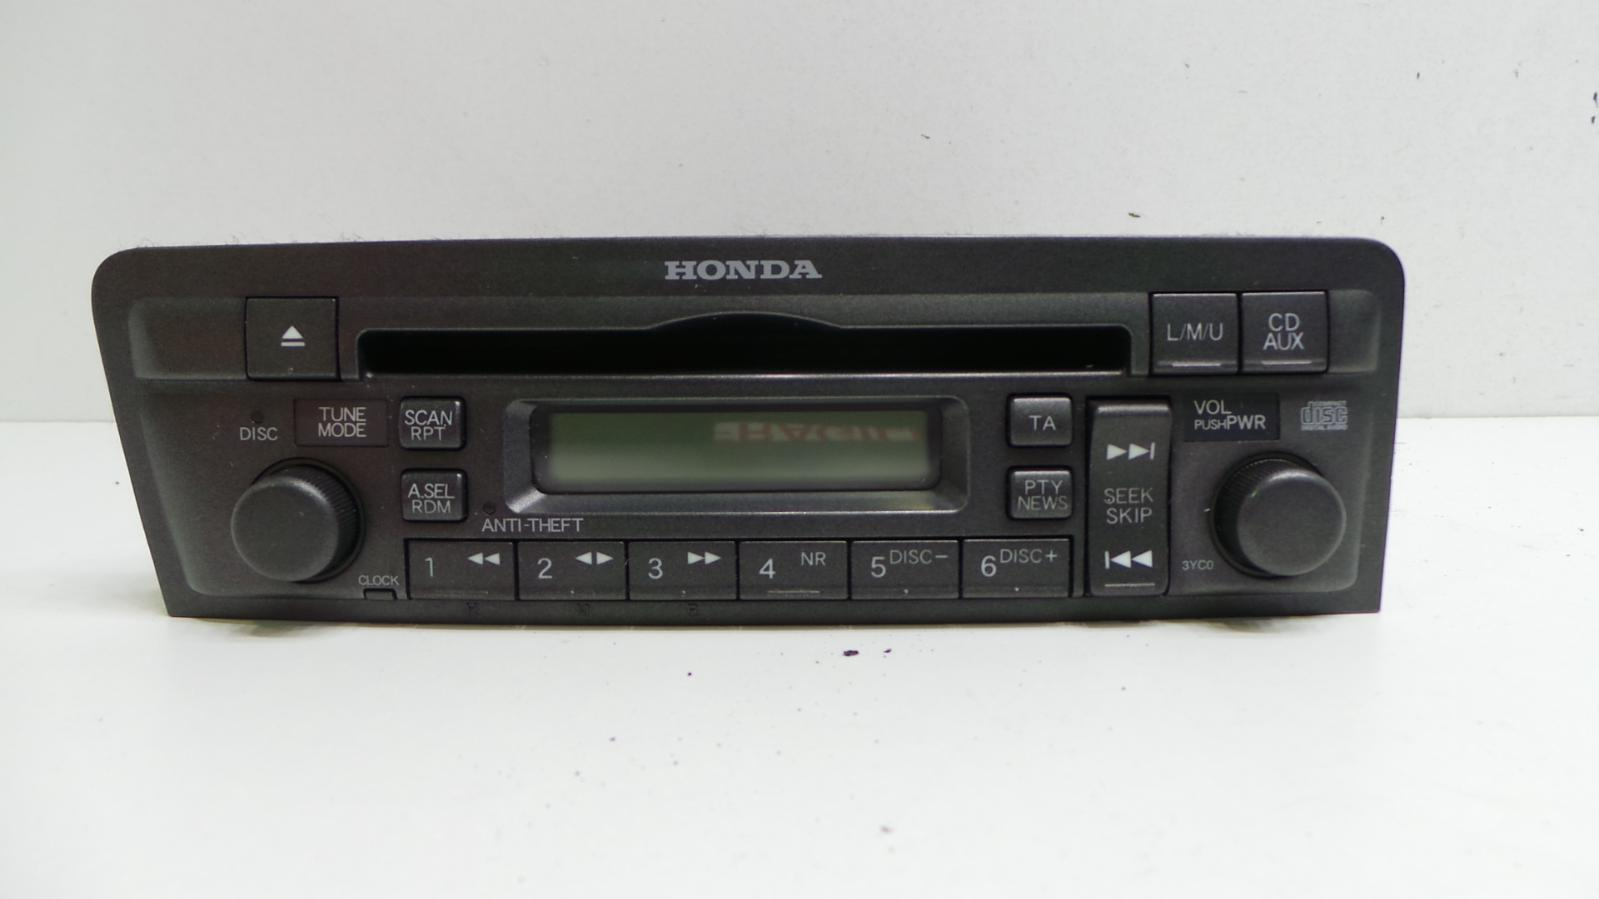 2002 honda civic mk7 genuine cd player radio stereo 39101. Black Bedroom Furniture Sets. Home Design Ideas